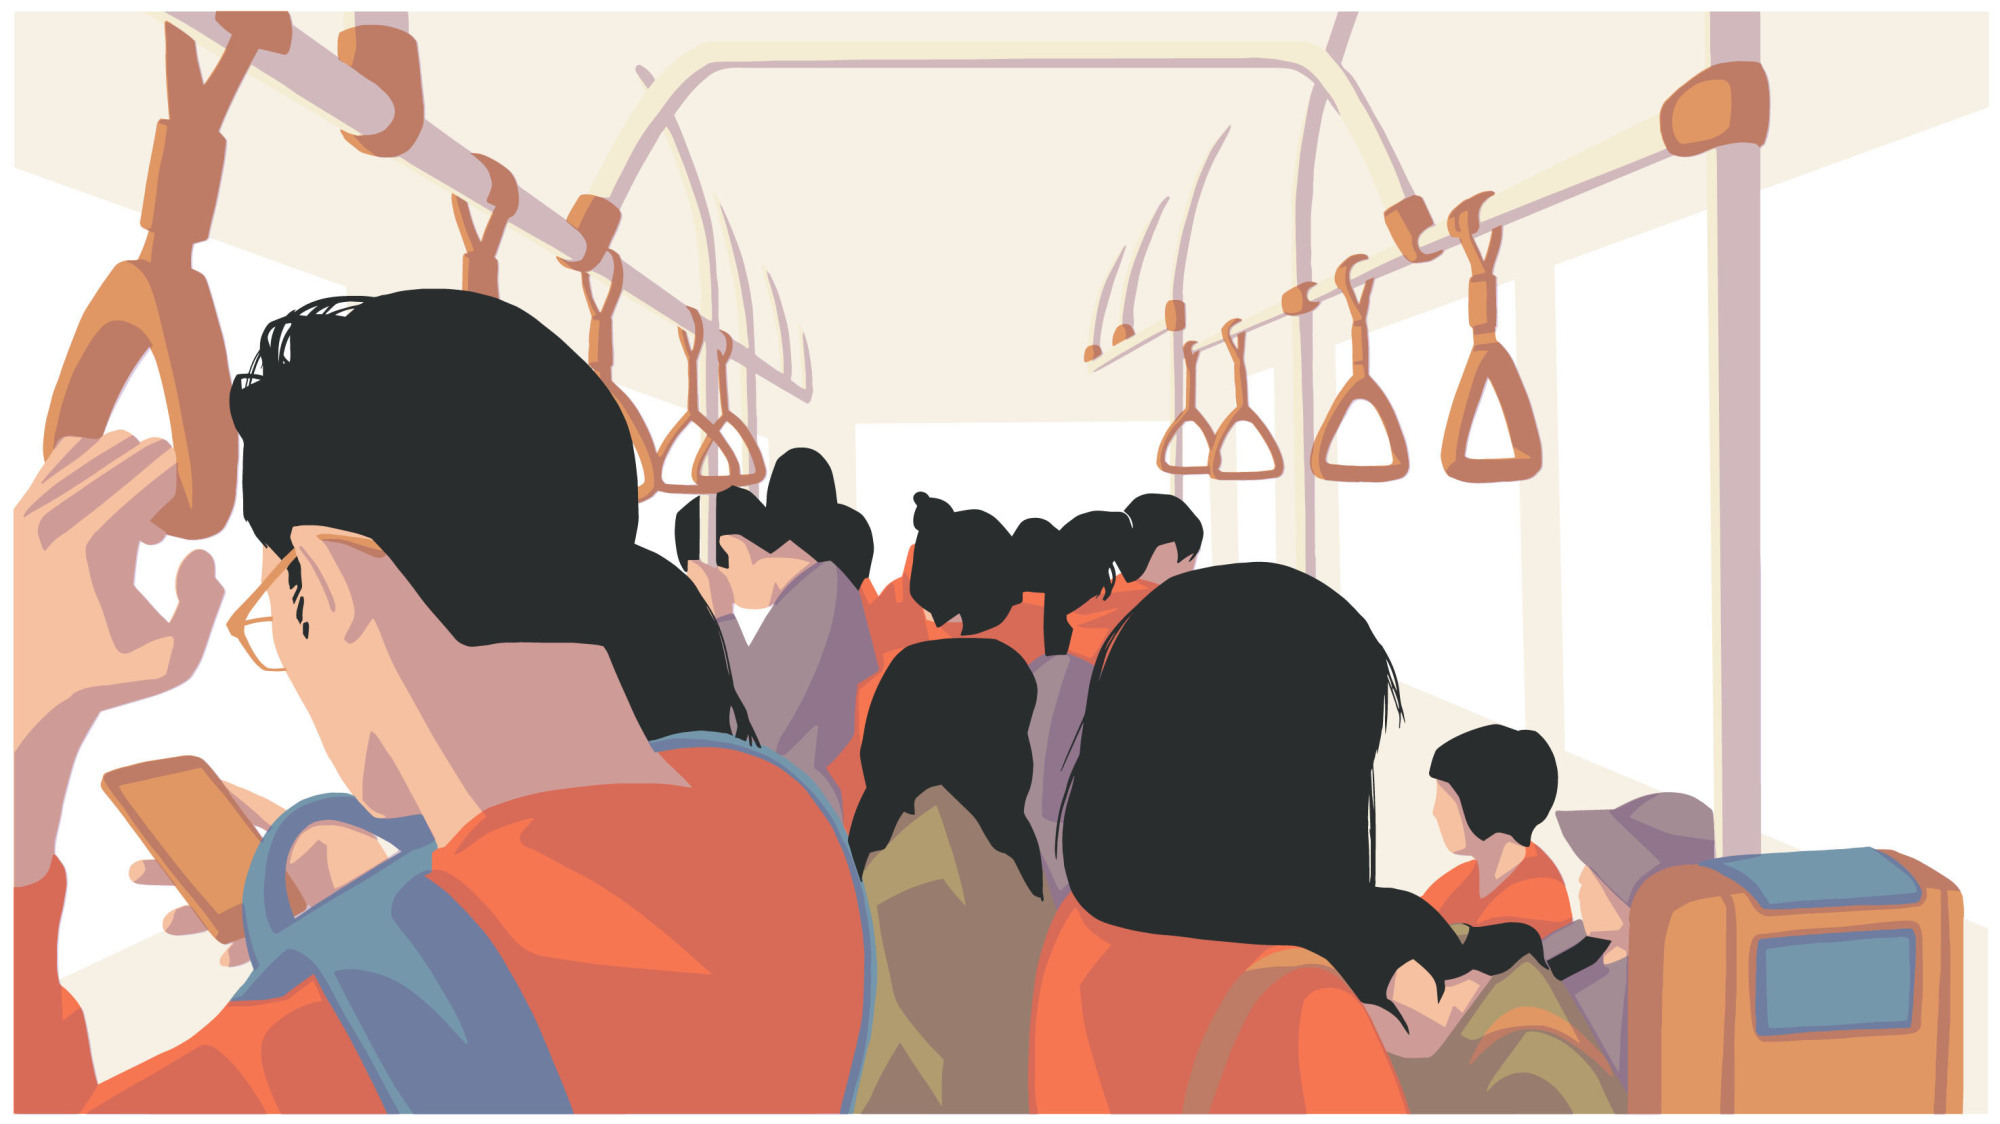 Ticket to ride: Mornings on a crowded train are never fun. After working from home, though, our writer feels less alienated thanks to the rush.   GETTY IMAGES